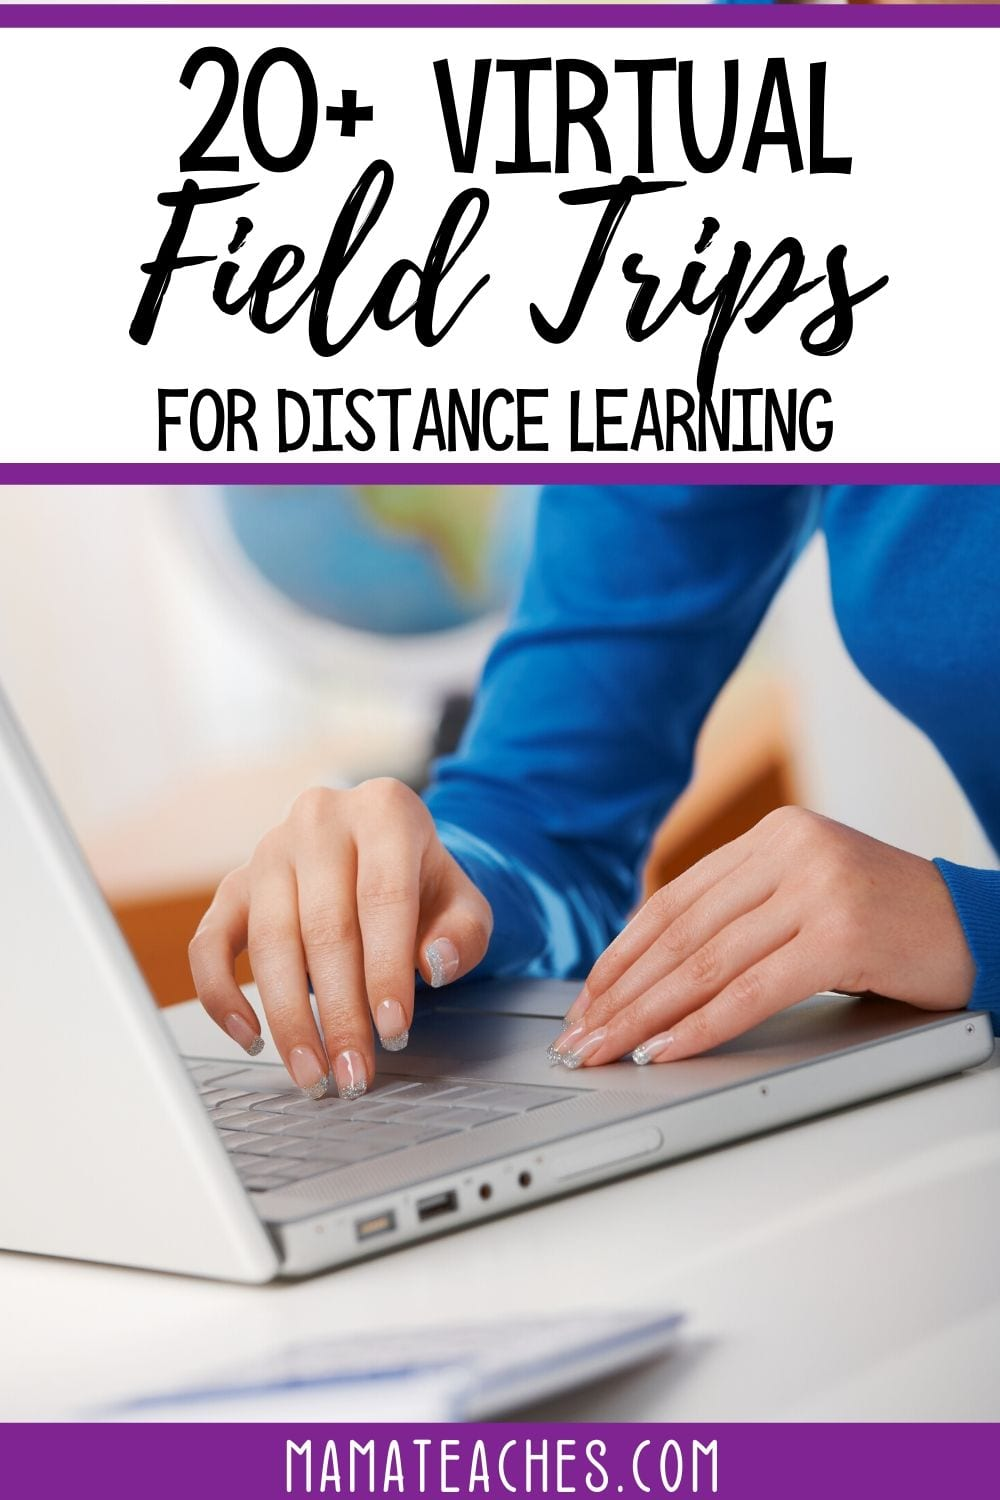 20+ Virtual Field Trips for Distance Learning in K-12 - MamaTeaches.com